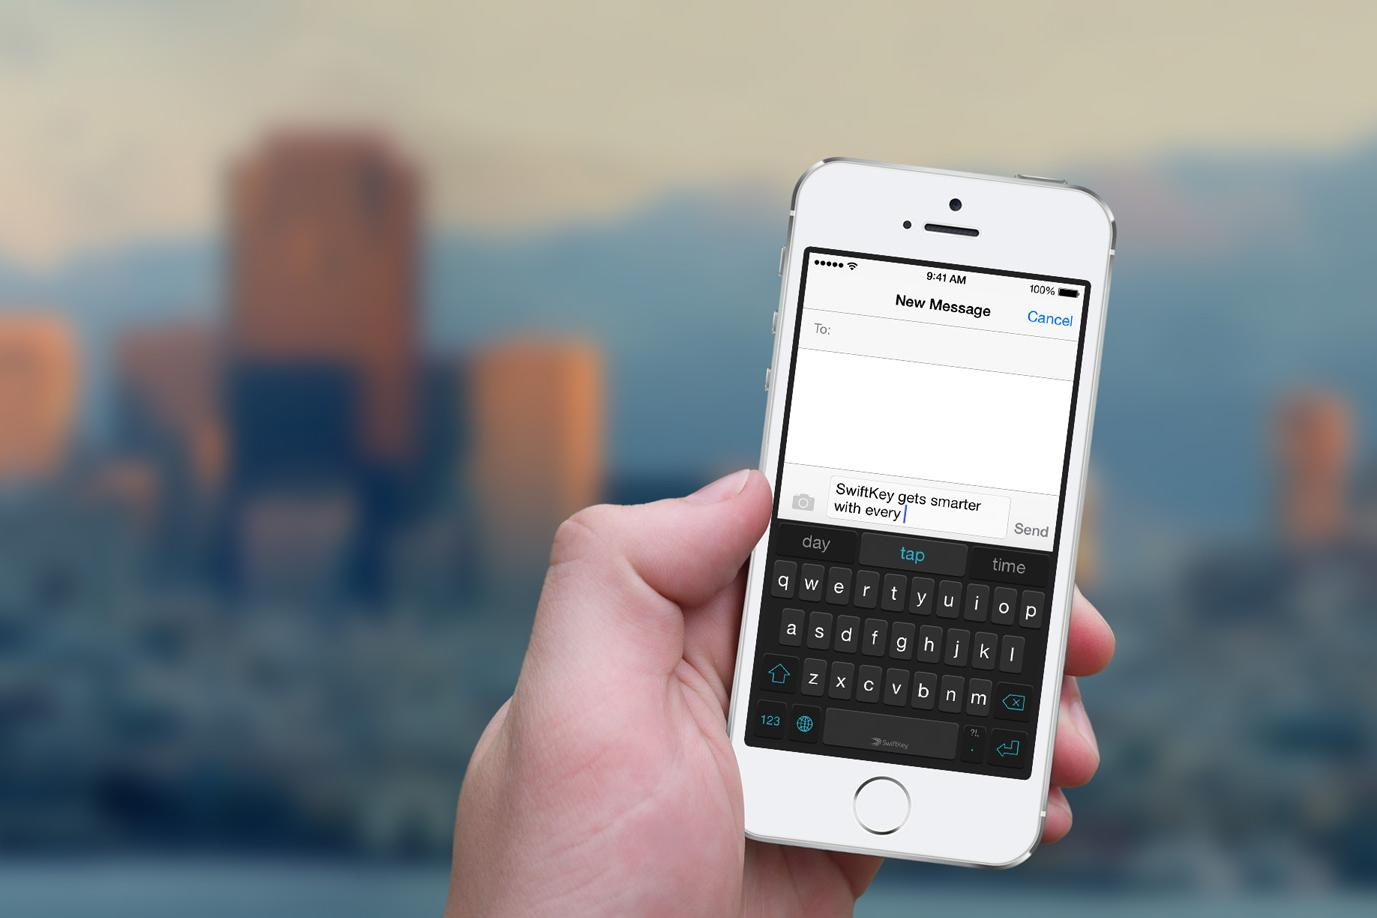 SwiftKey, one of the best iOS keyboards, adds stats, facts